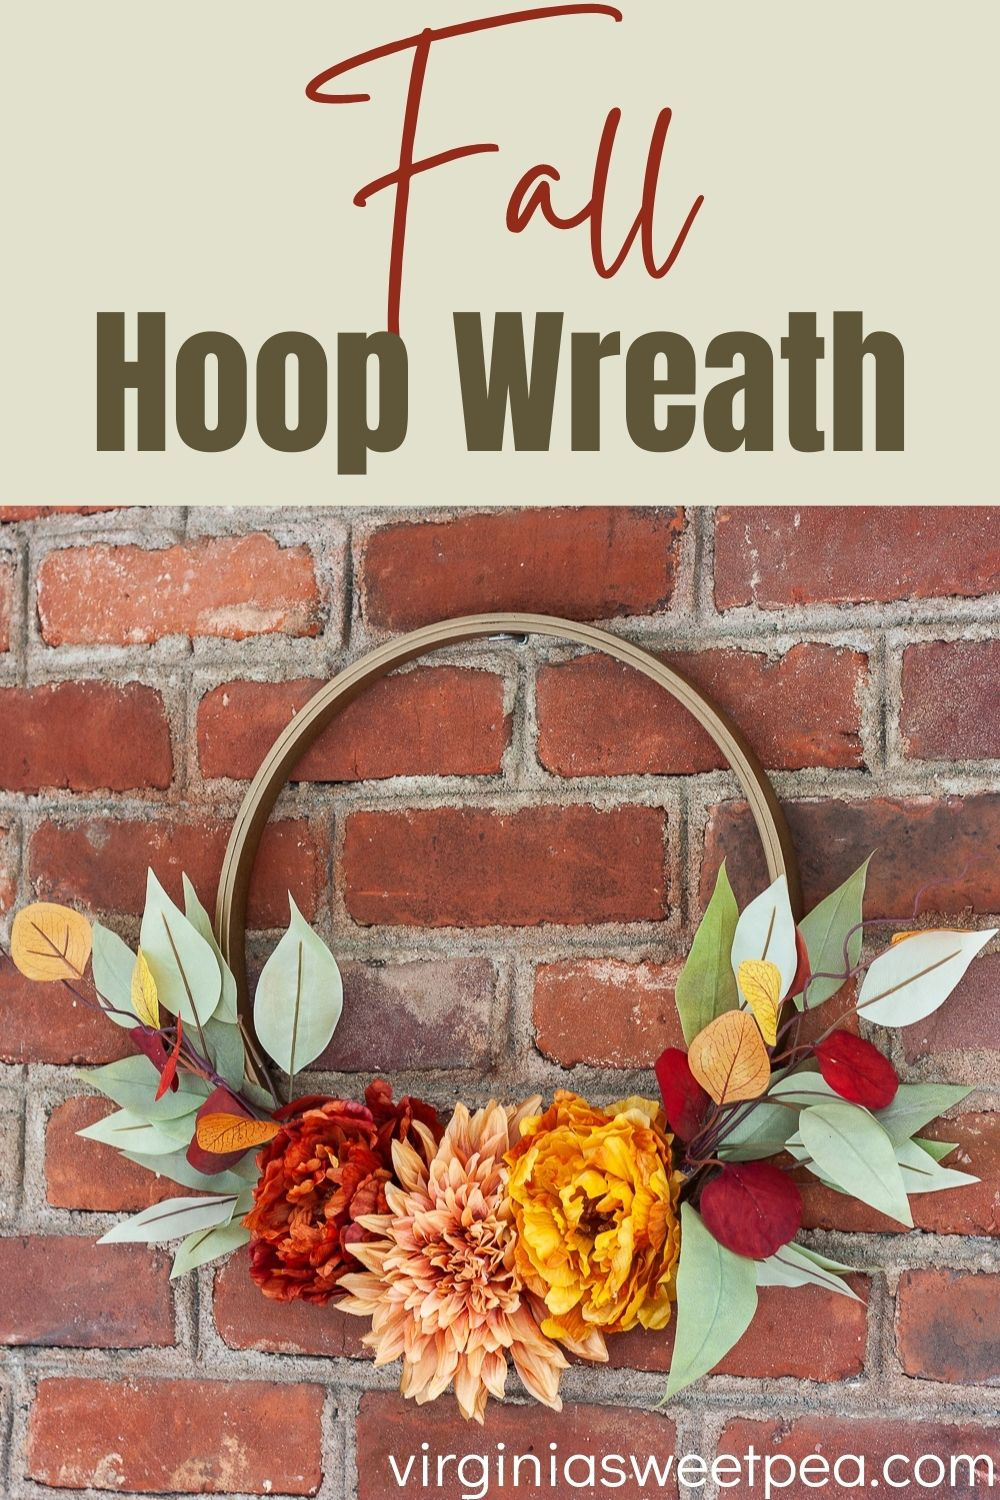 Fall Hoop Wreath - Learn how to make a fall hoop wreath to use for fall decor for your home.  This looks great hanging on a door, over a mantel, or on a wall.  #fallwreath #hoopwreath #fallhoopwreath via @spaula